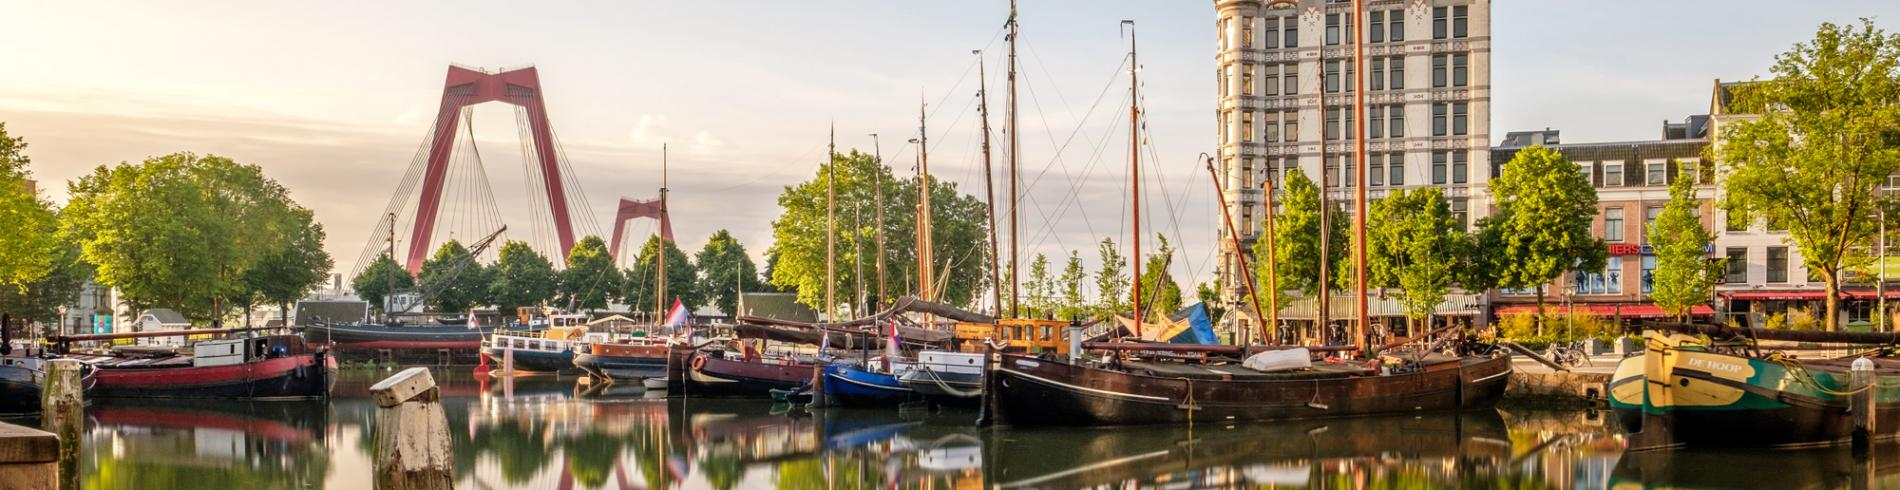 Oude Haven area of Rotterdam